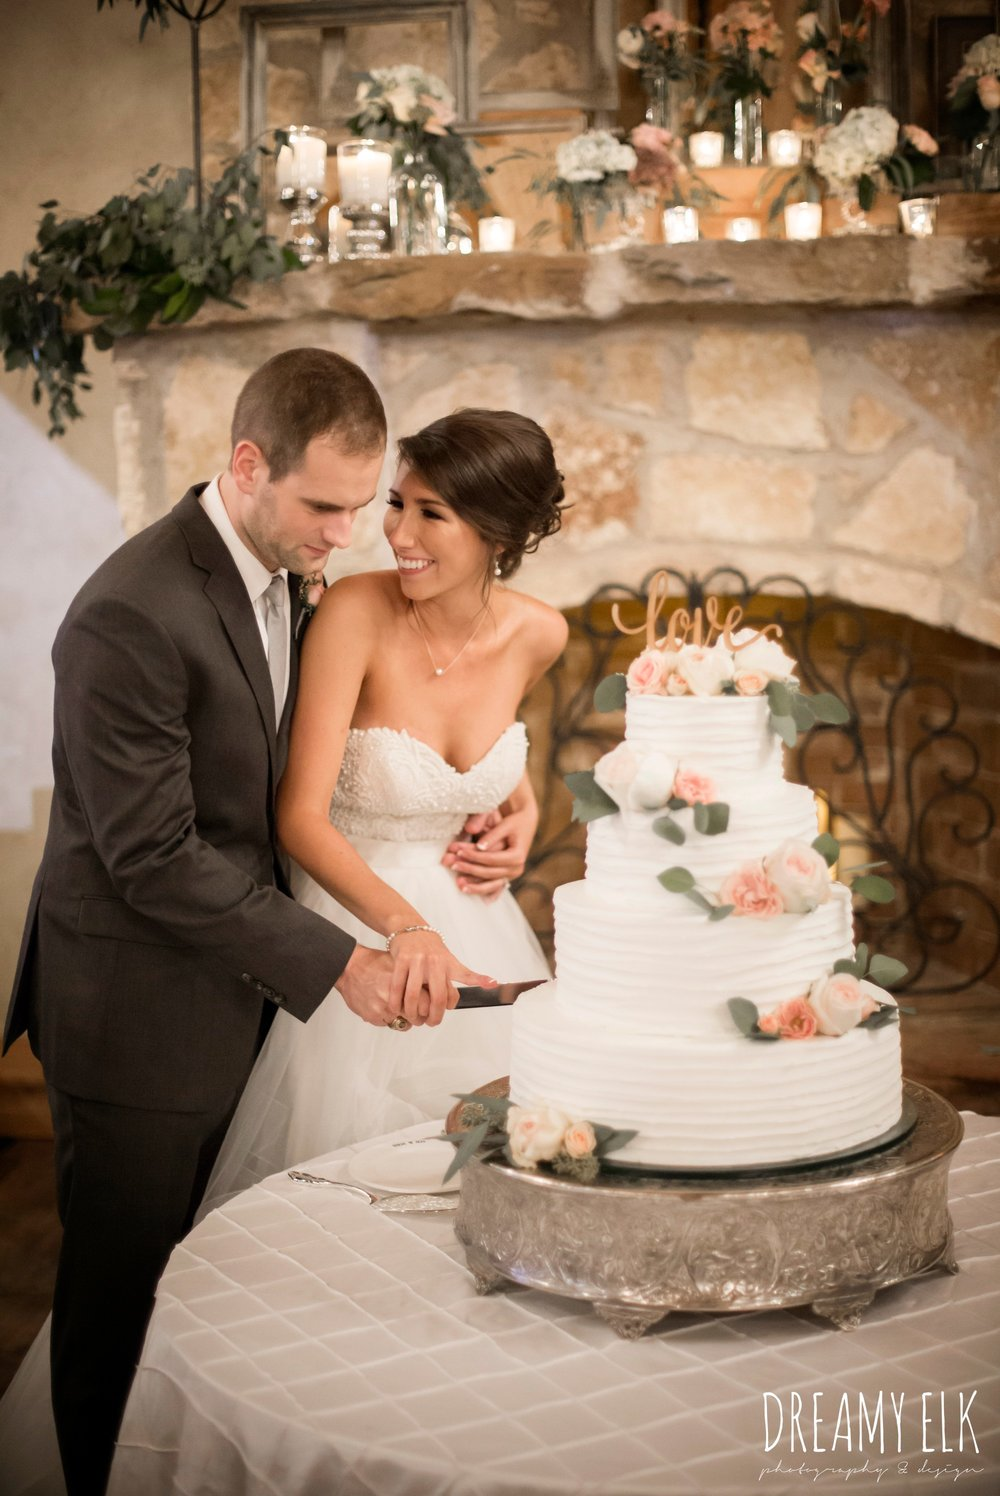 bride and groom cutting the cake, four tier wedding cake with flowers, love cake topper, outdoor fall october wedding photo, blush and gray wedding, balmorhea weddings and events, dreamy elk photography and design, austin texas wedding photographer